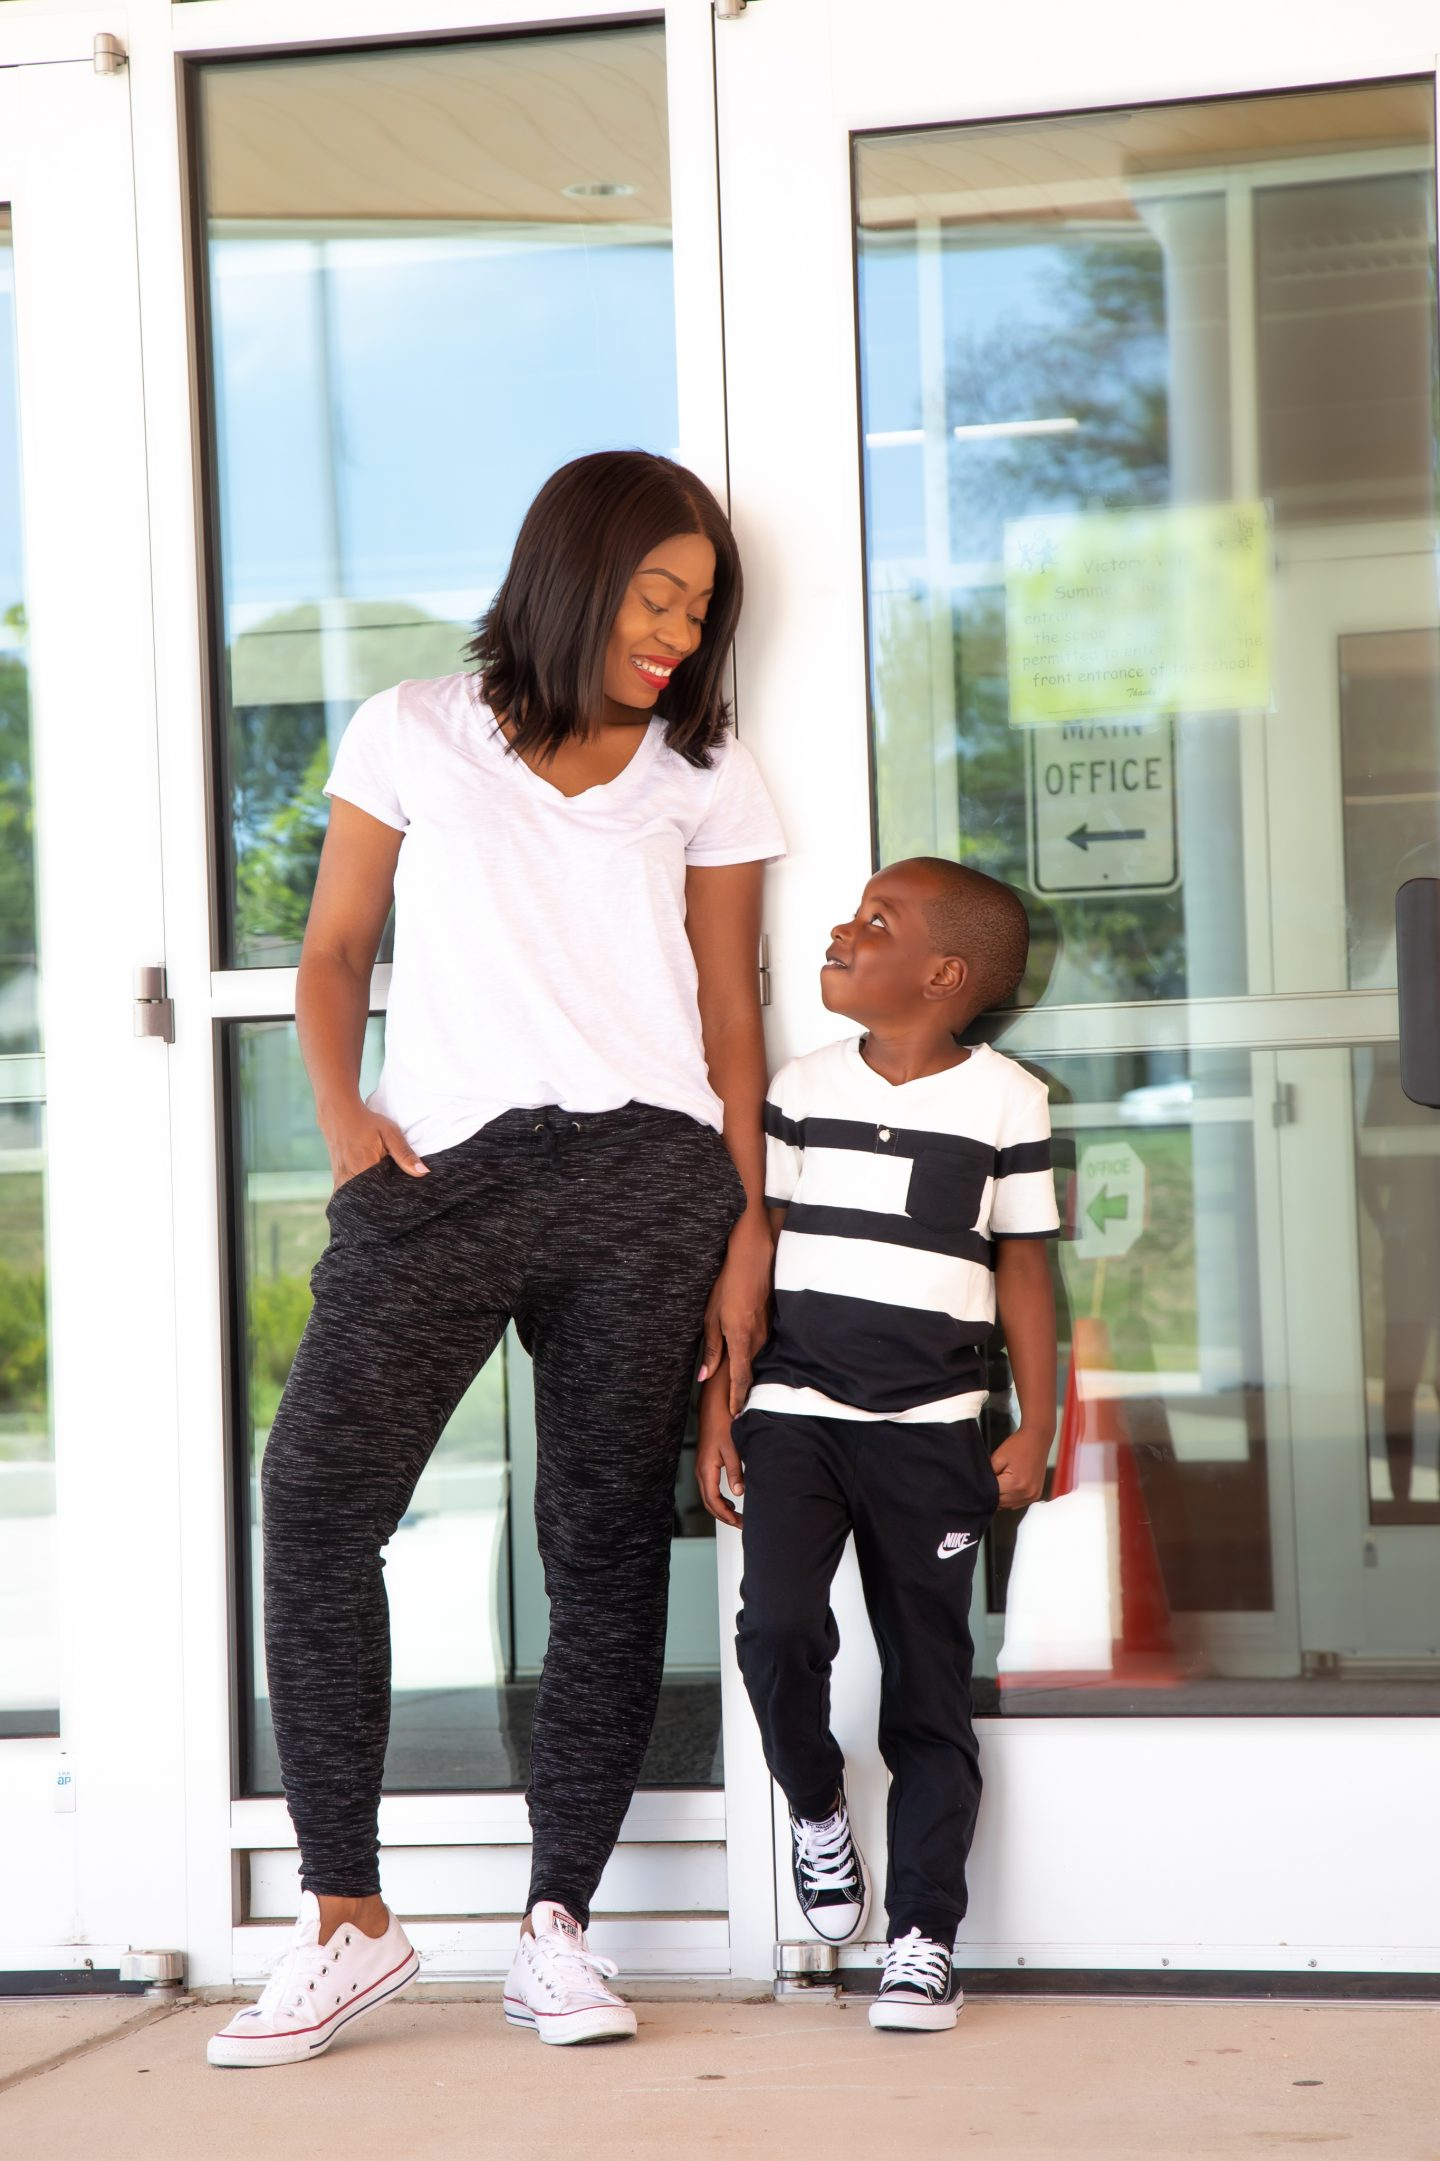 mom and son in joggers and converser for back to school